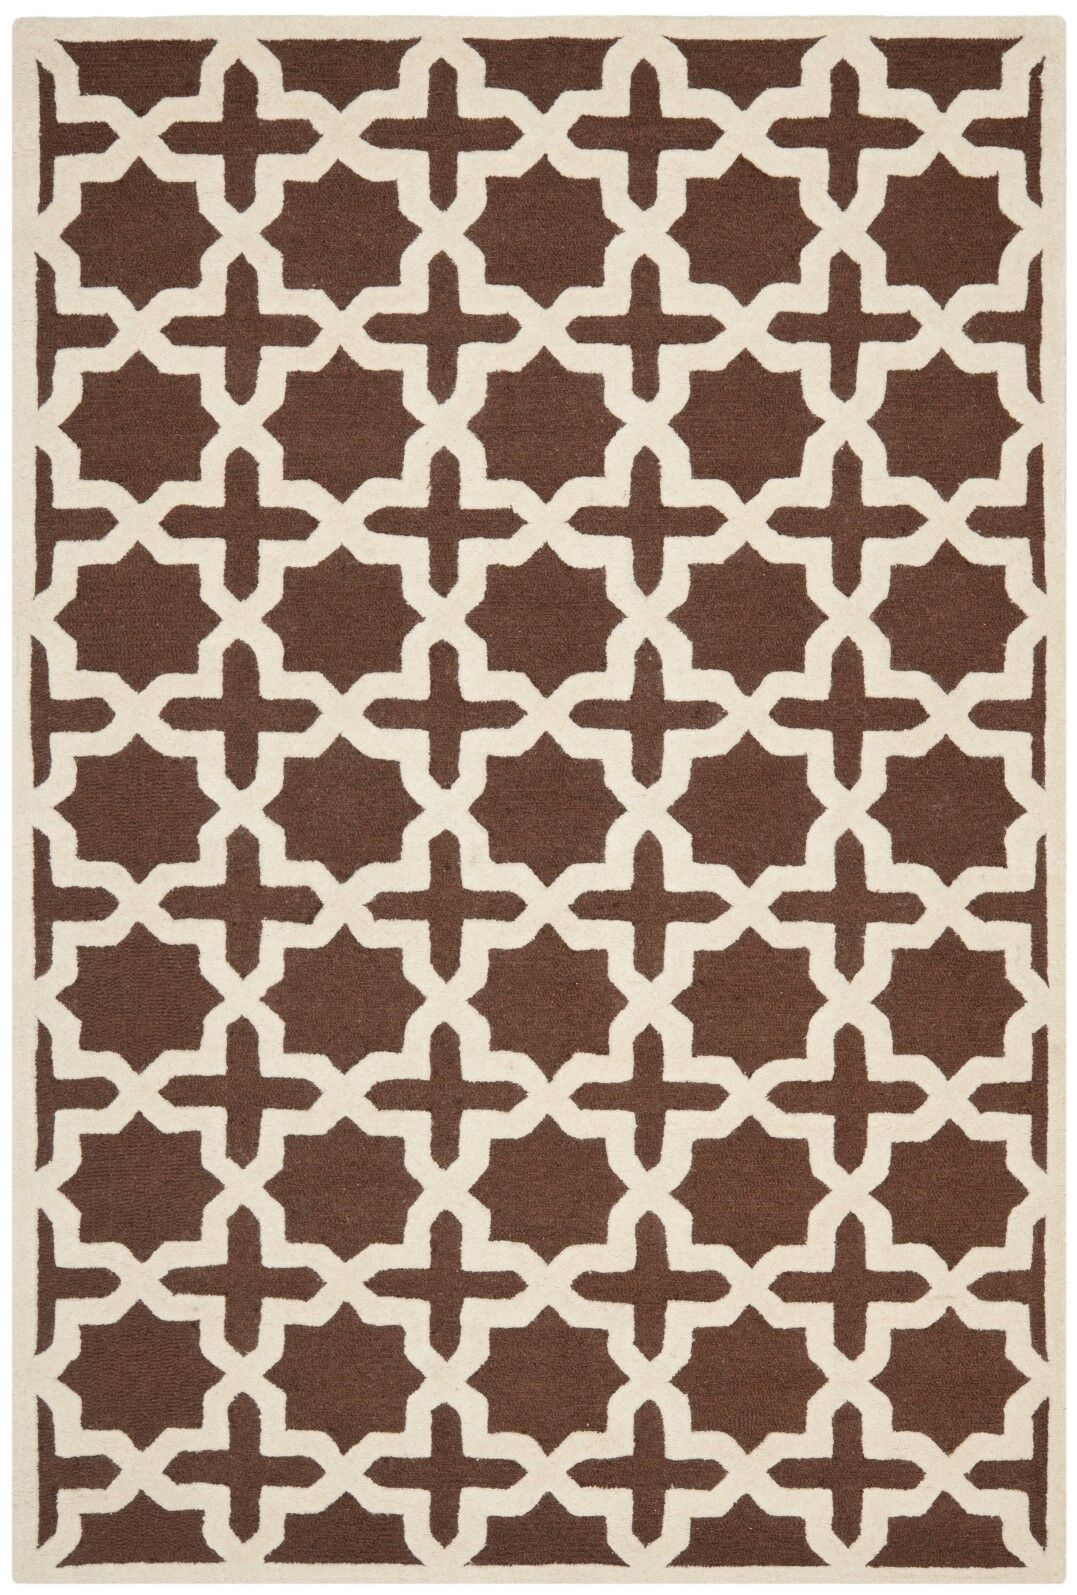 Brunswick Wool Brown/Ivory Area Rug Rug Size: Rectangle 6' x 9'